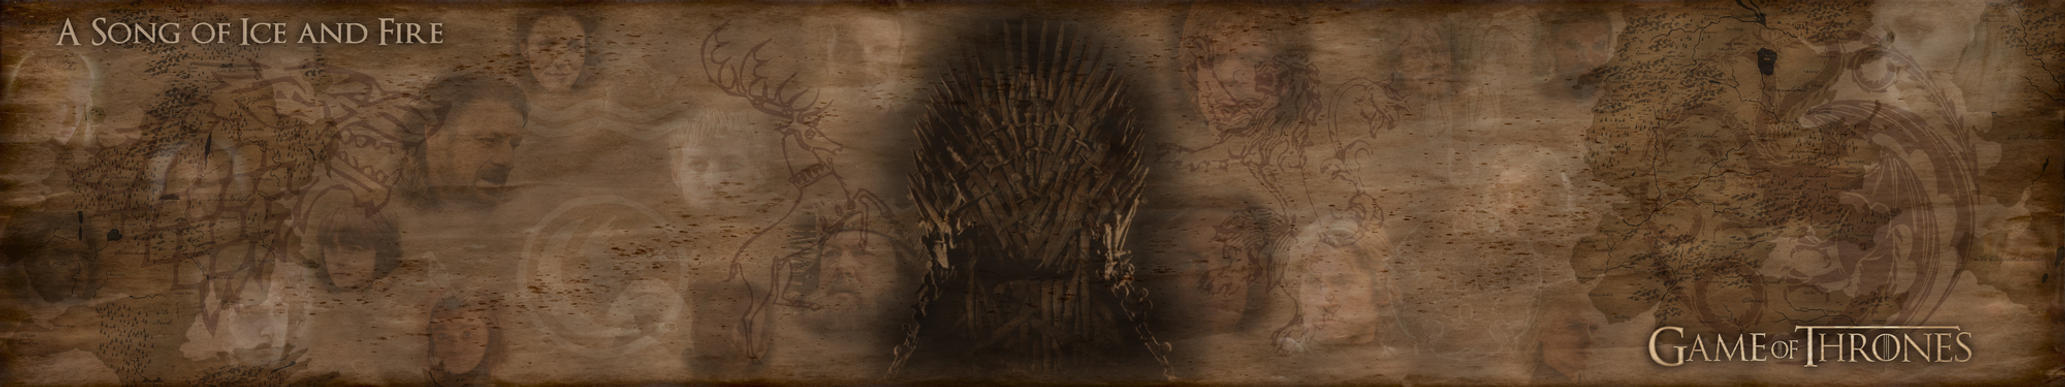 Game Of Thrones Triscreen 01 By Base113 On Deviantart